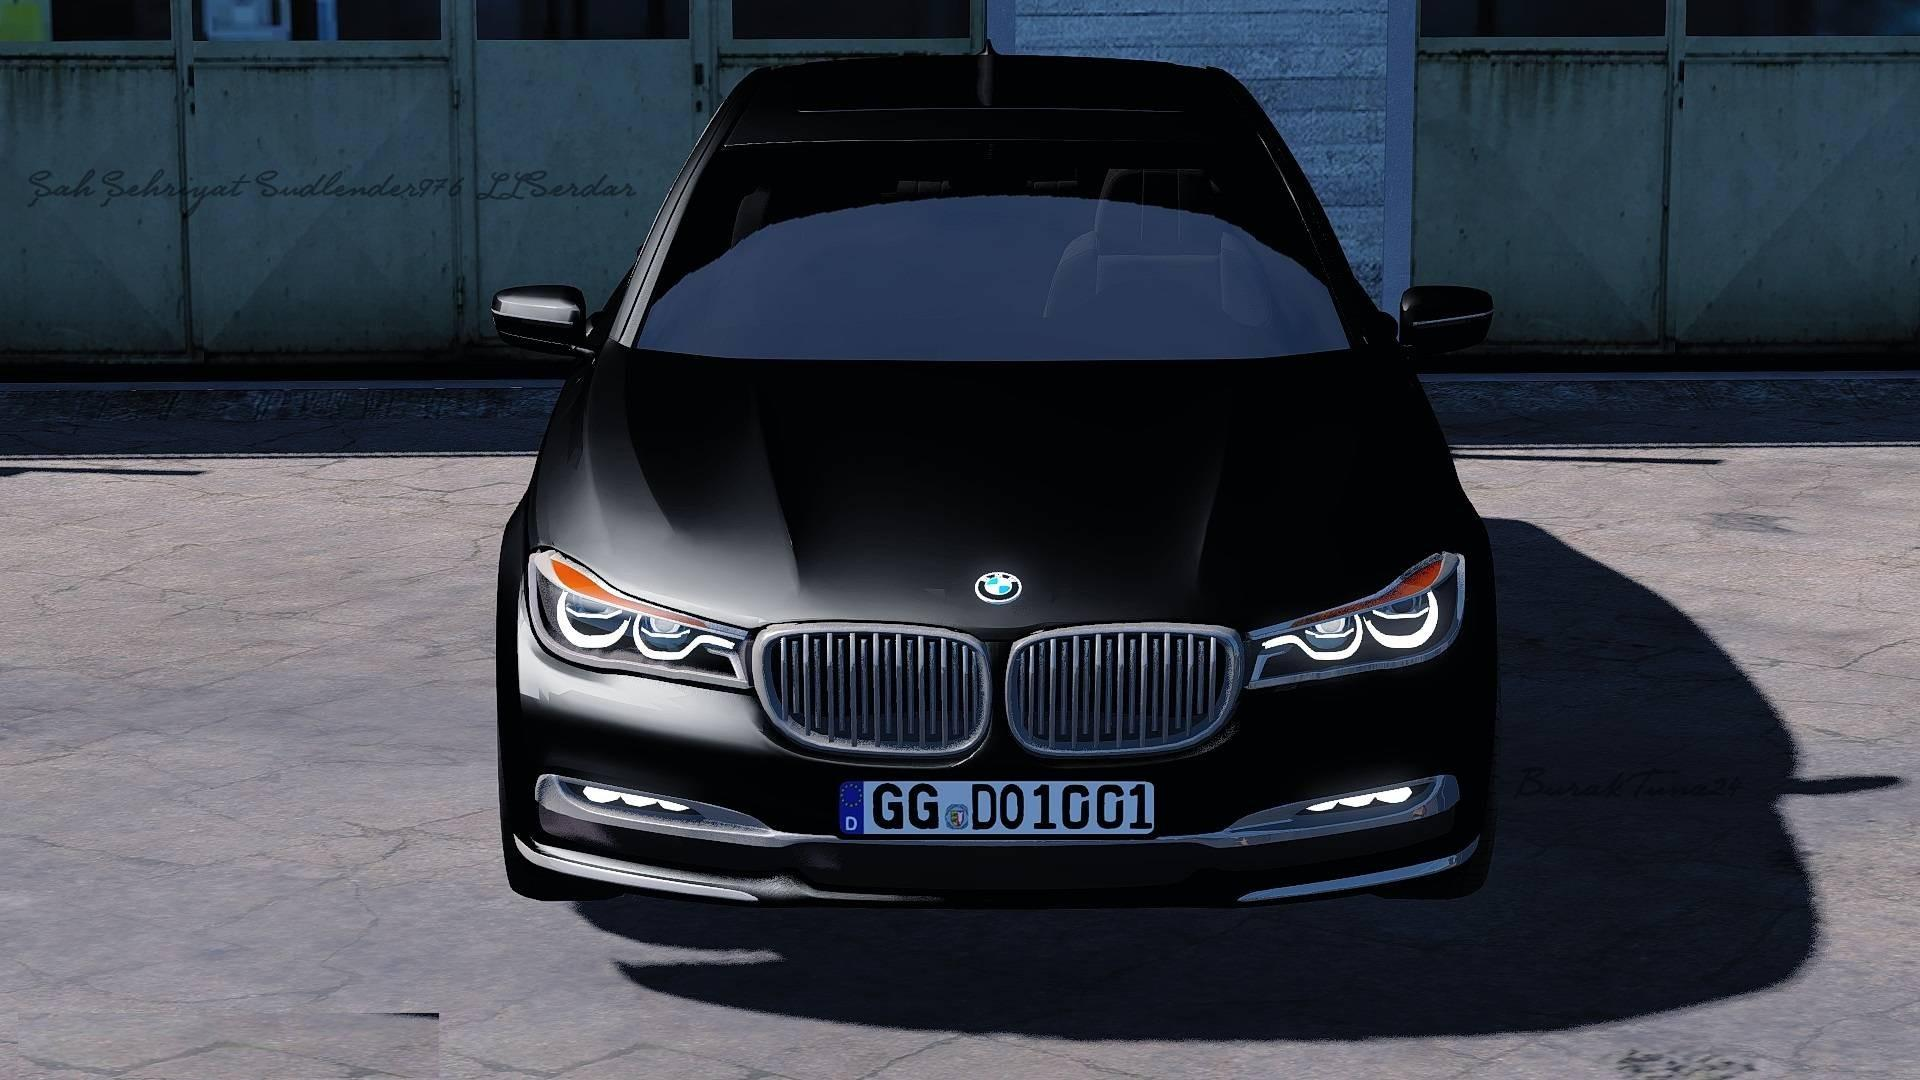 Open Road Bmw >> 2017 BMW 750LD XDRIVE BY BURAKTUNA24 CAR MOD - ETS2 Mod